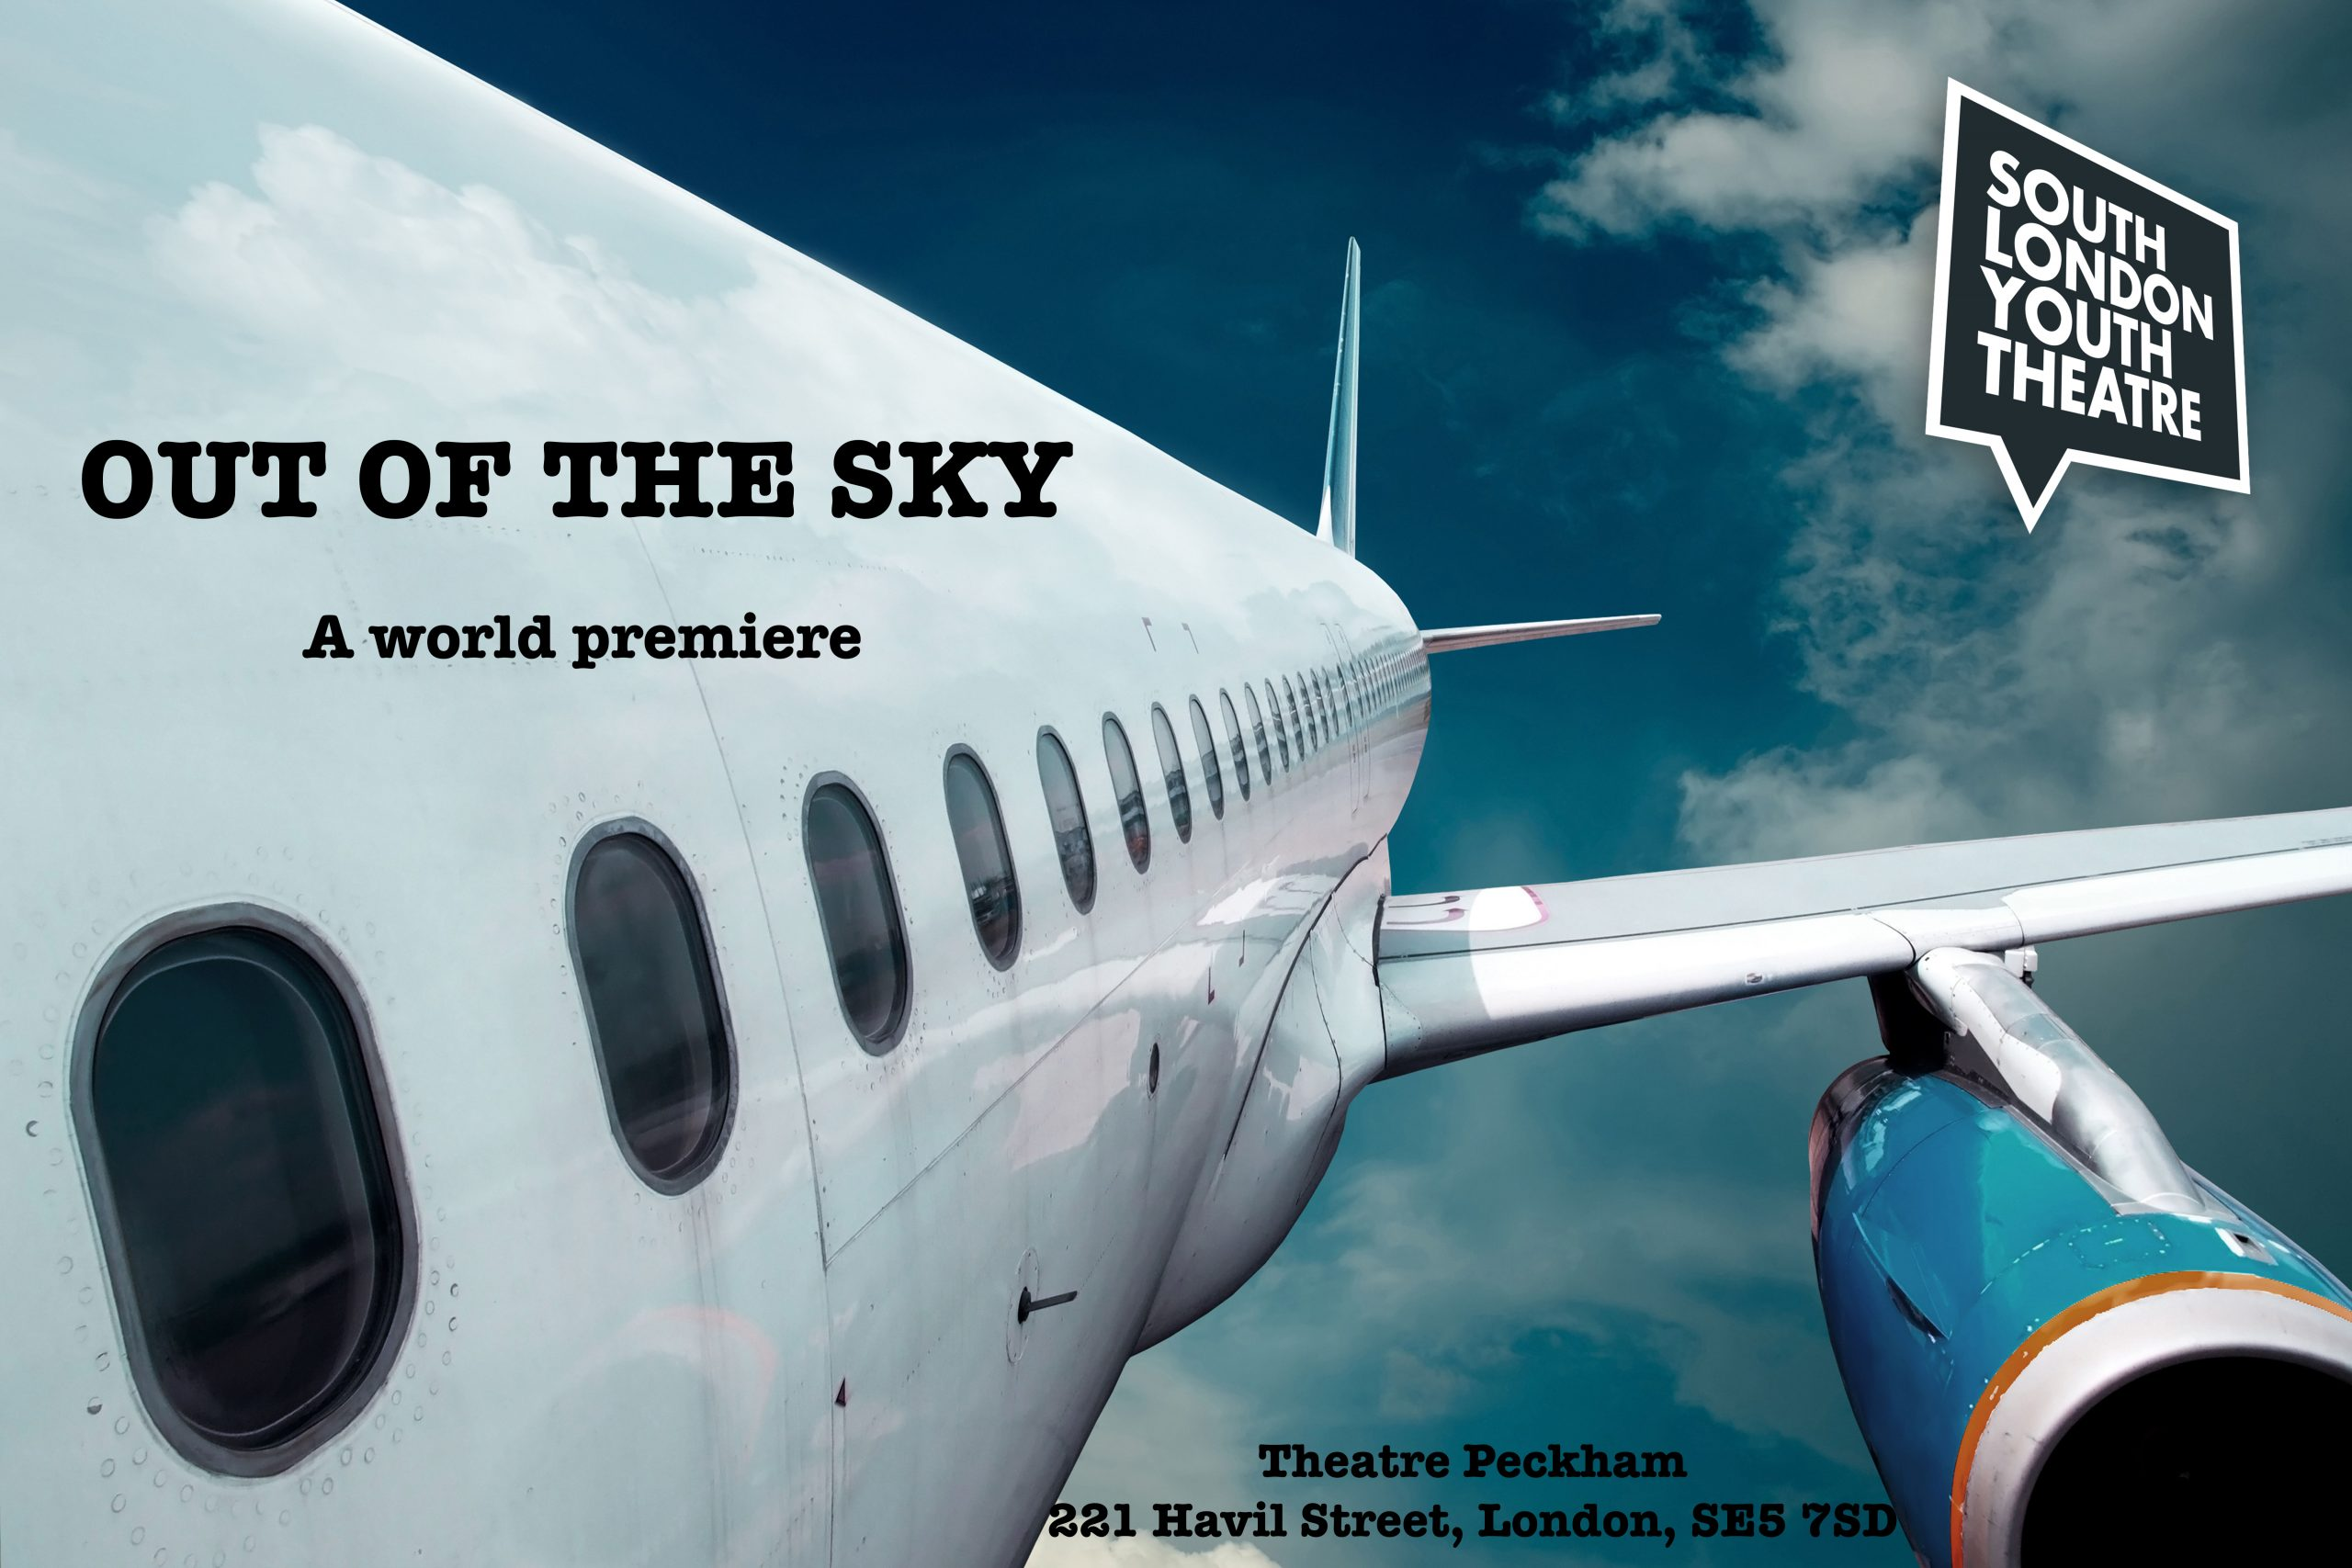 OUT OF THE SKY – 3.00pm Matinee